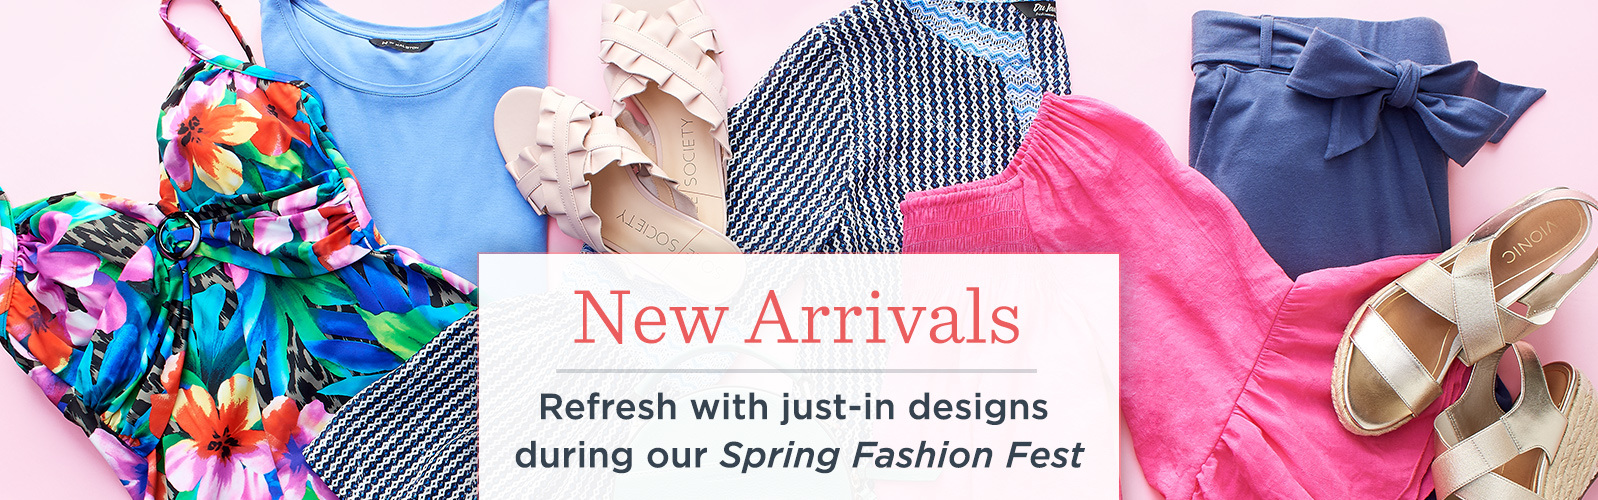 New Arrivals. Refresh with just-in designs during our Spring Fashion Fest.